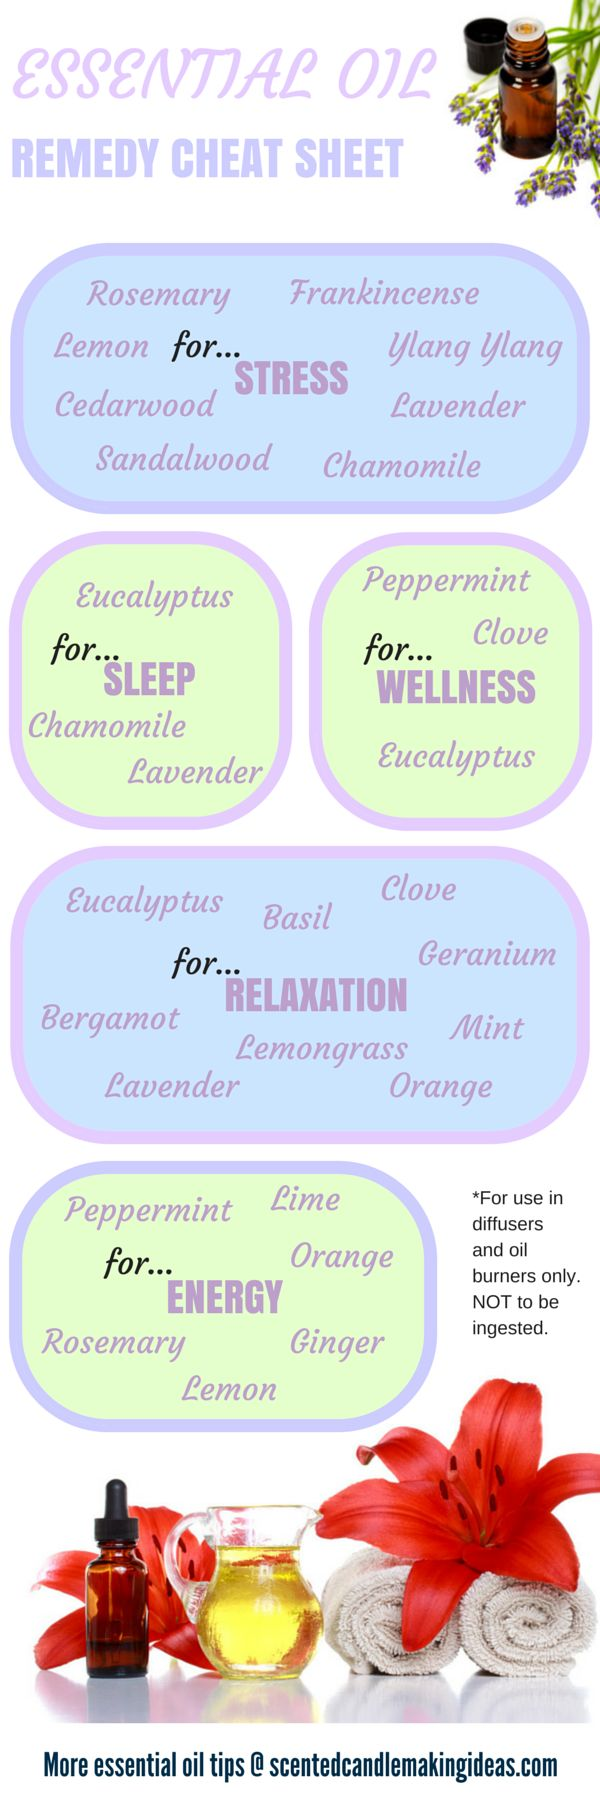 Essential Oil Uses - Natural remedies cheat sheet. Learn about essential oils for stress, relaxation, energy and sleep. Read more at scentedcandlemakingideas.com